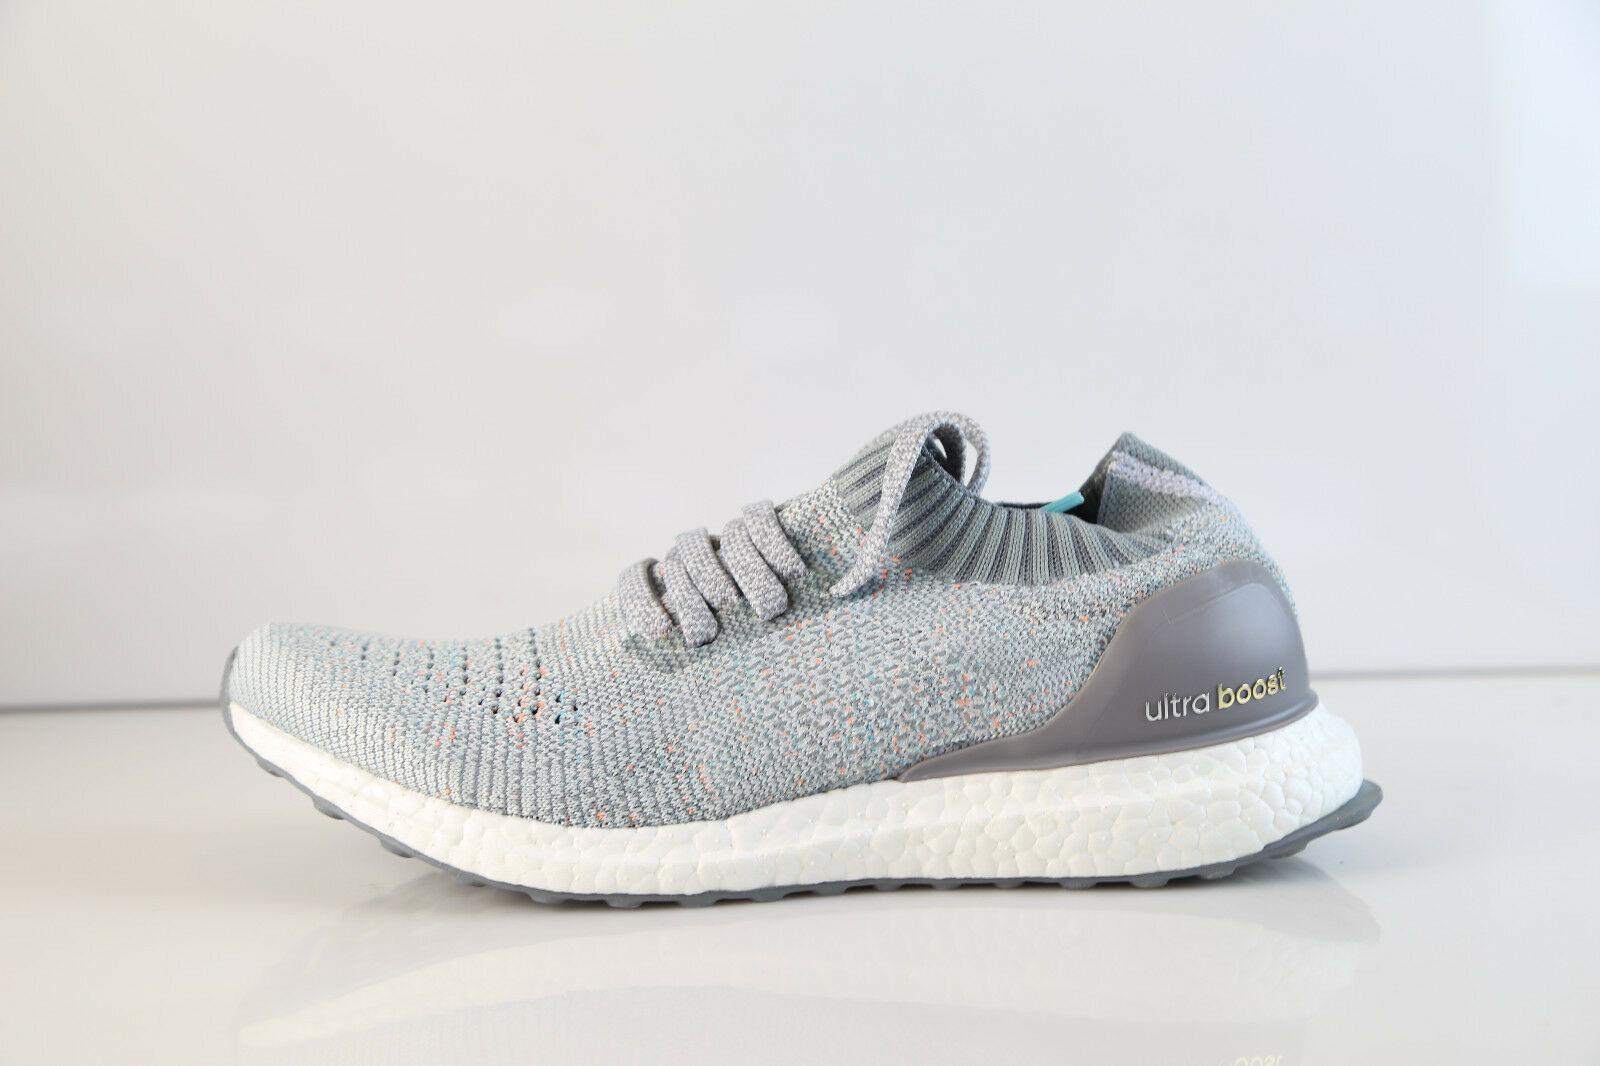 c63ed0654 NEW SAUCONY FREEDOM ISO 2 MENS CUSHIONED COMFORTABLE SPORTS SHOES. Adidas  Ultraboost Uncaged Grey BB4489 8 8.5 ultra boost pk